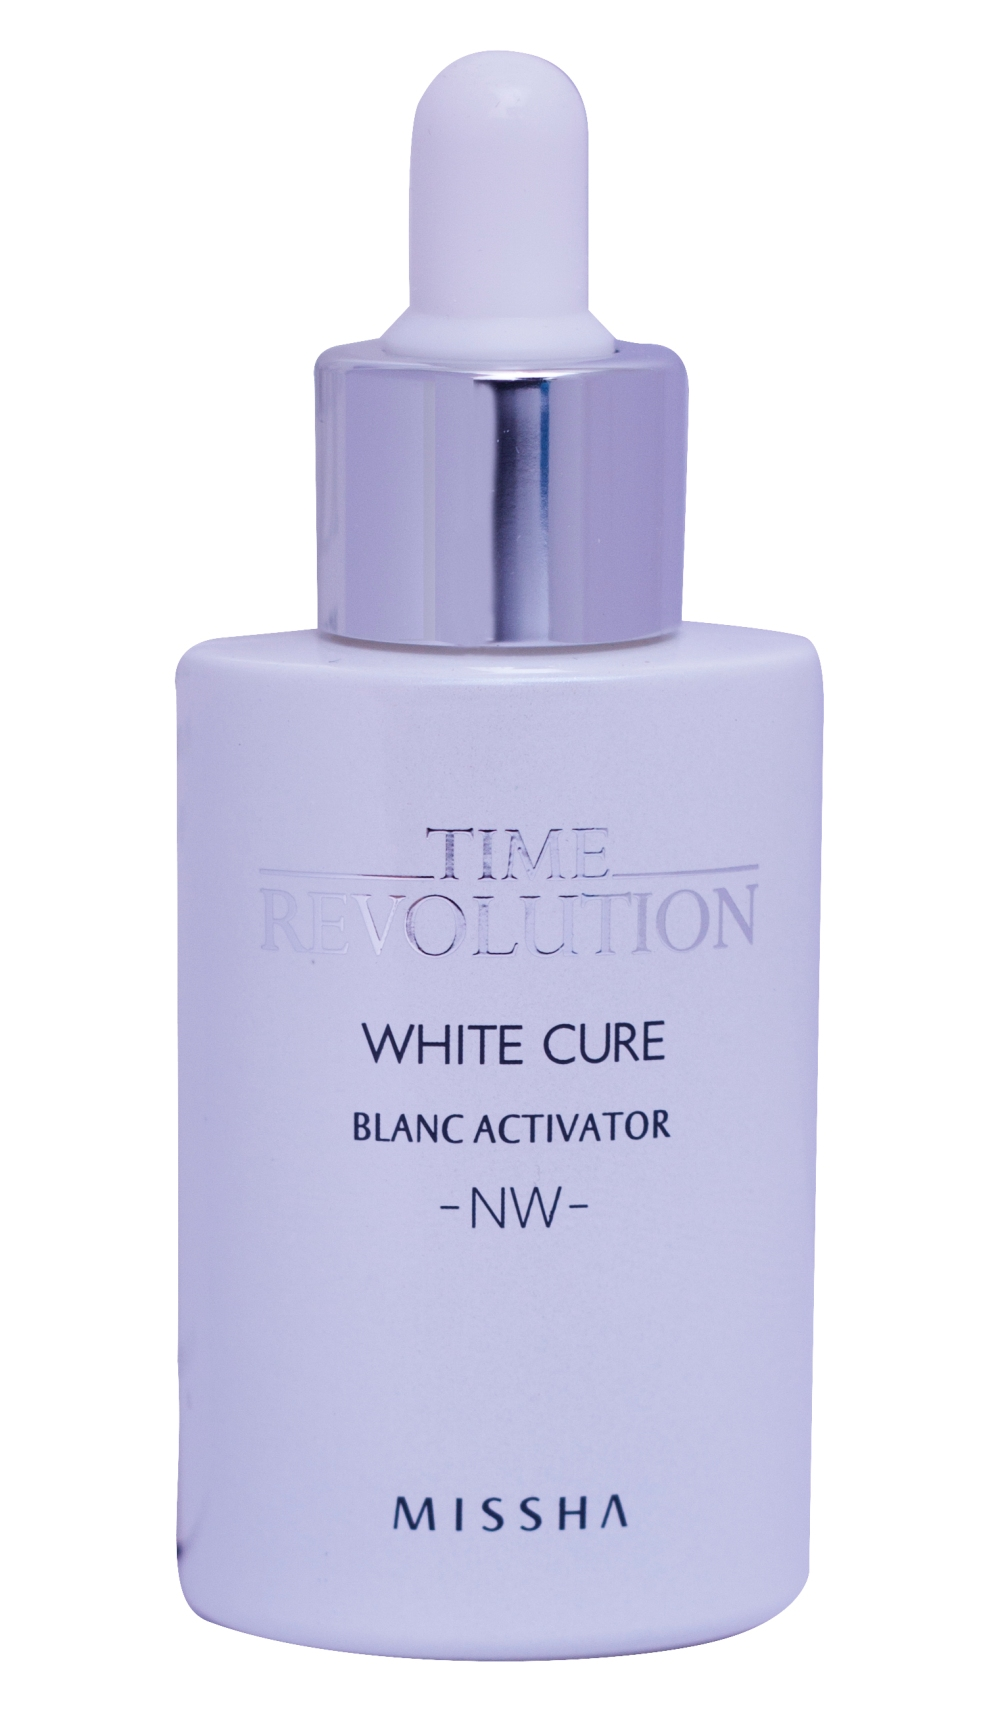 Missha Time Revolution White Cure Blanc Activator